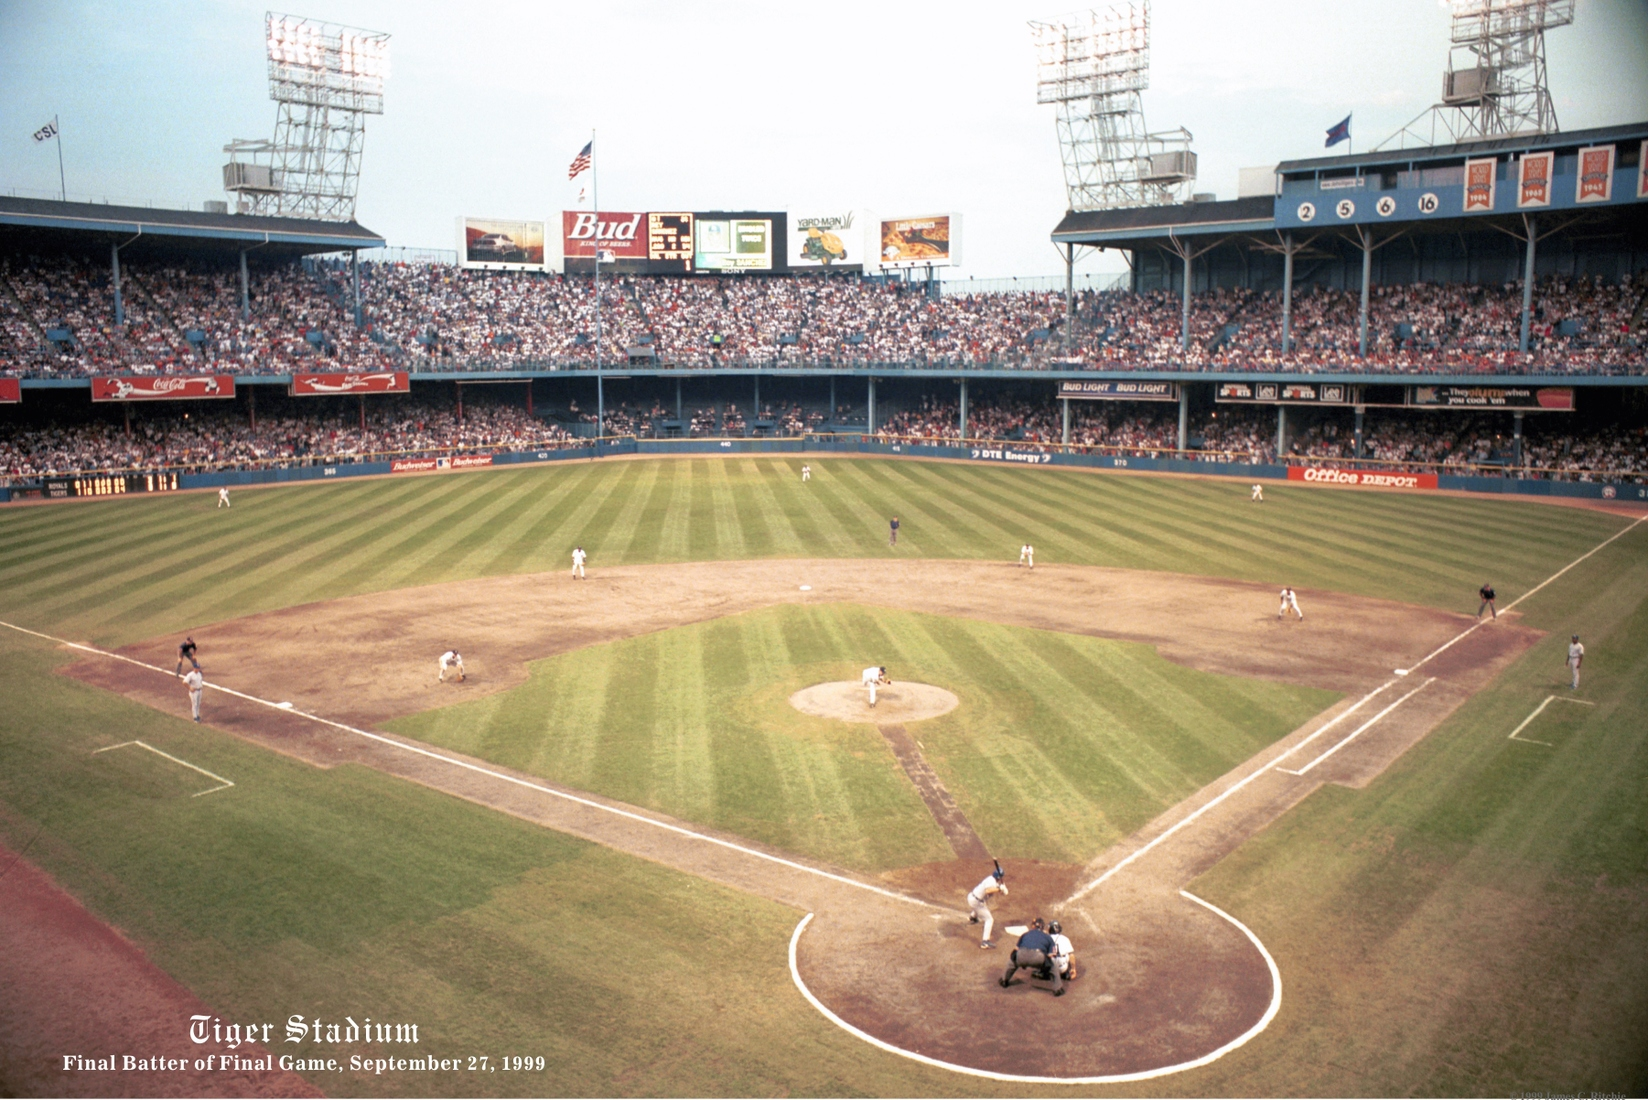 Detroit Sports Final Batter of Final Game at Tiger Stadium